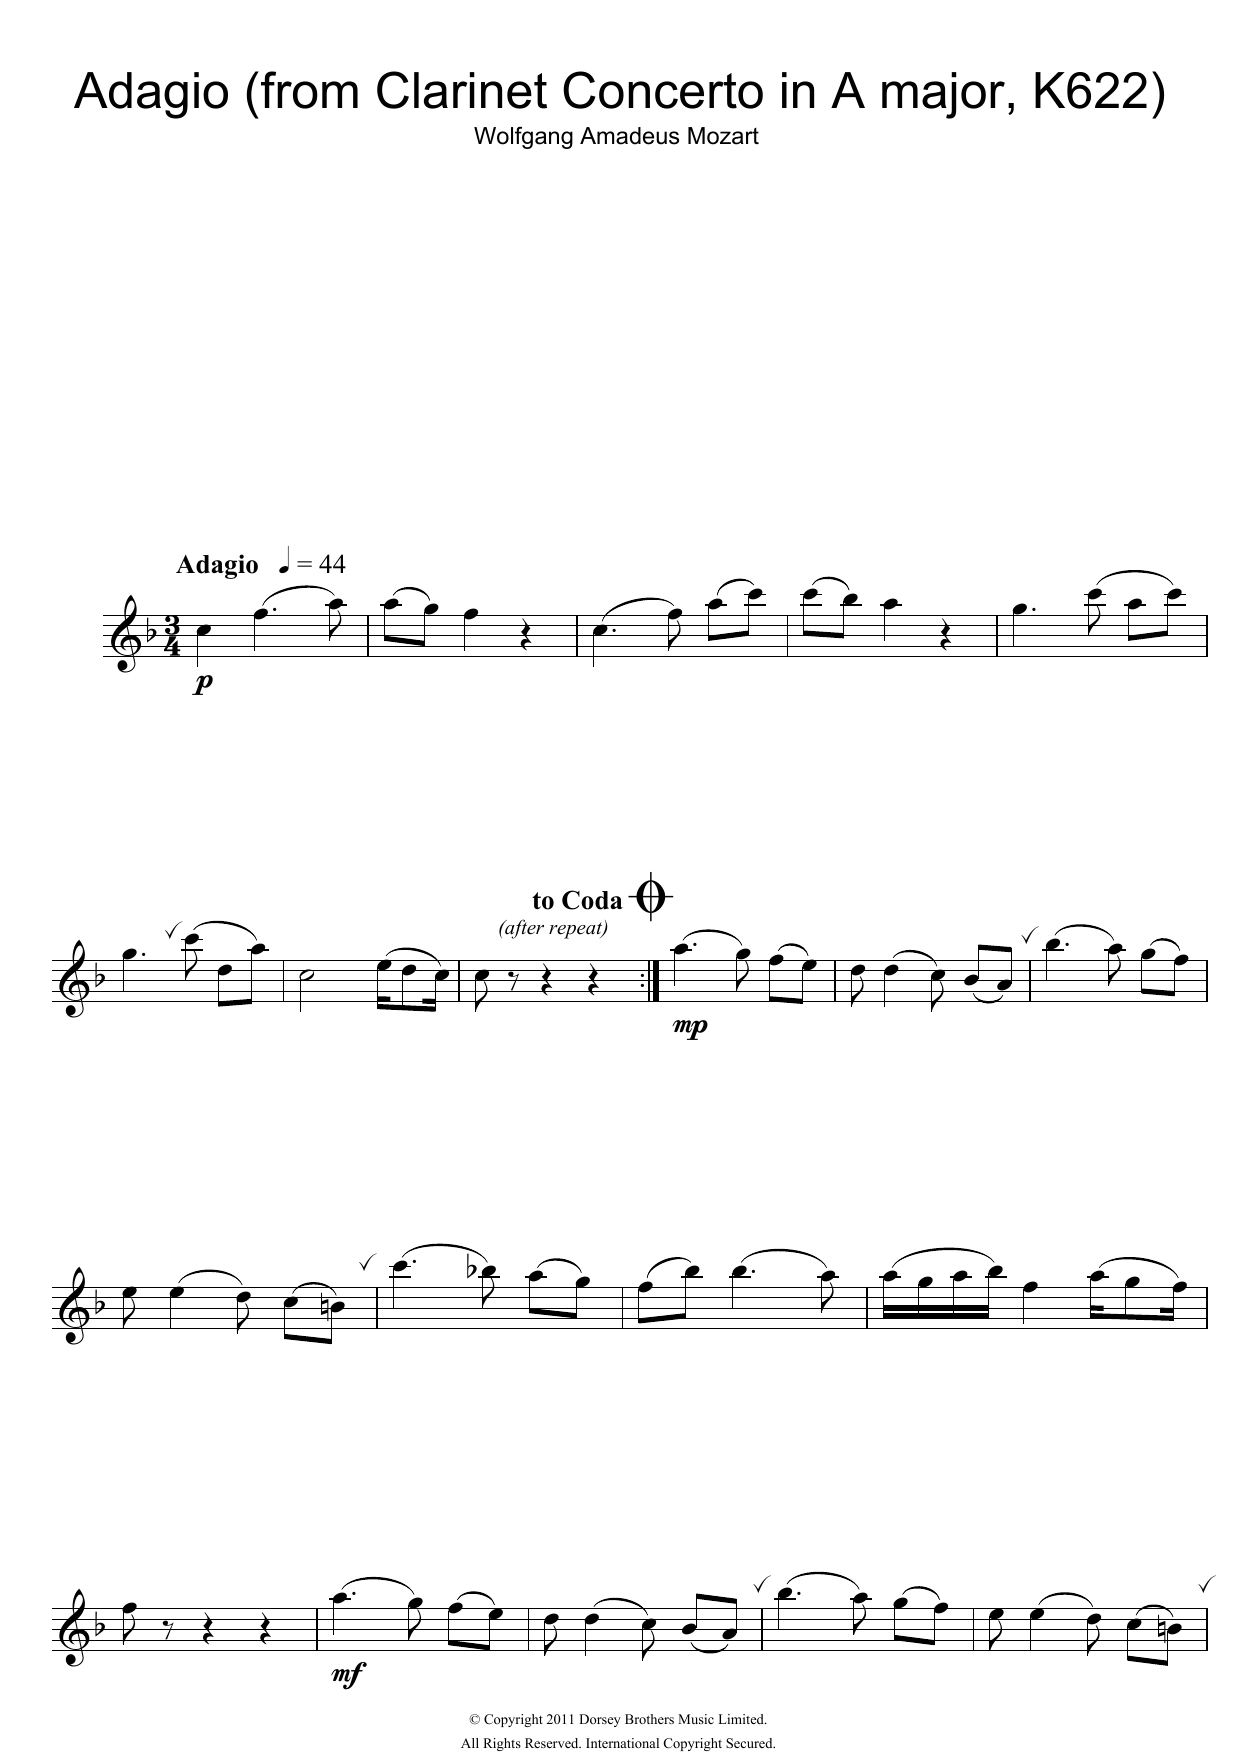 Slow Movement Theme From Clarinet Concerto K622 By Wolfgang Amadeus Mozart Lead Sheet Fake Book Digital Sheet Music